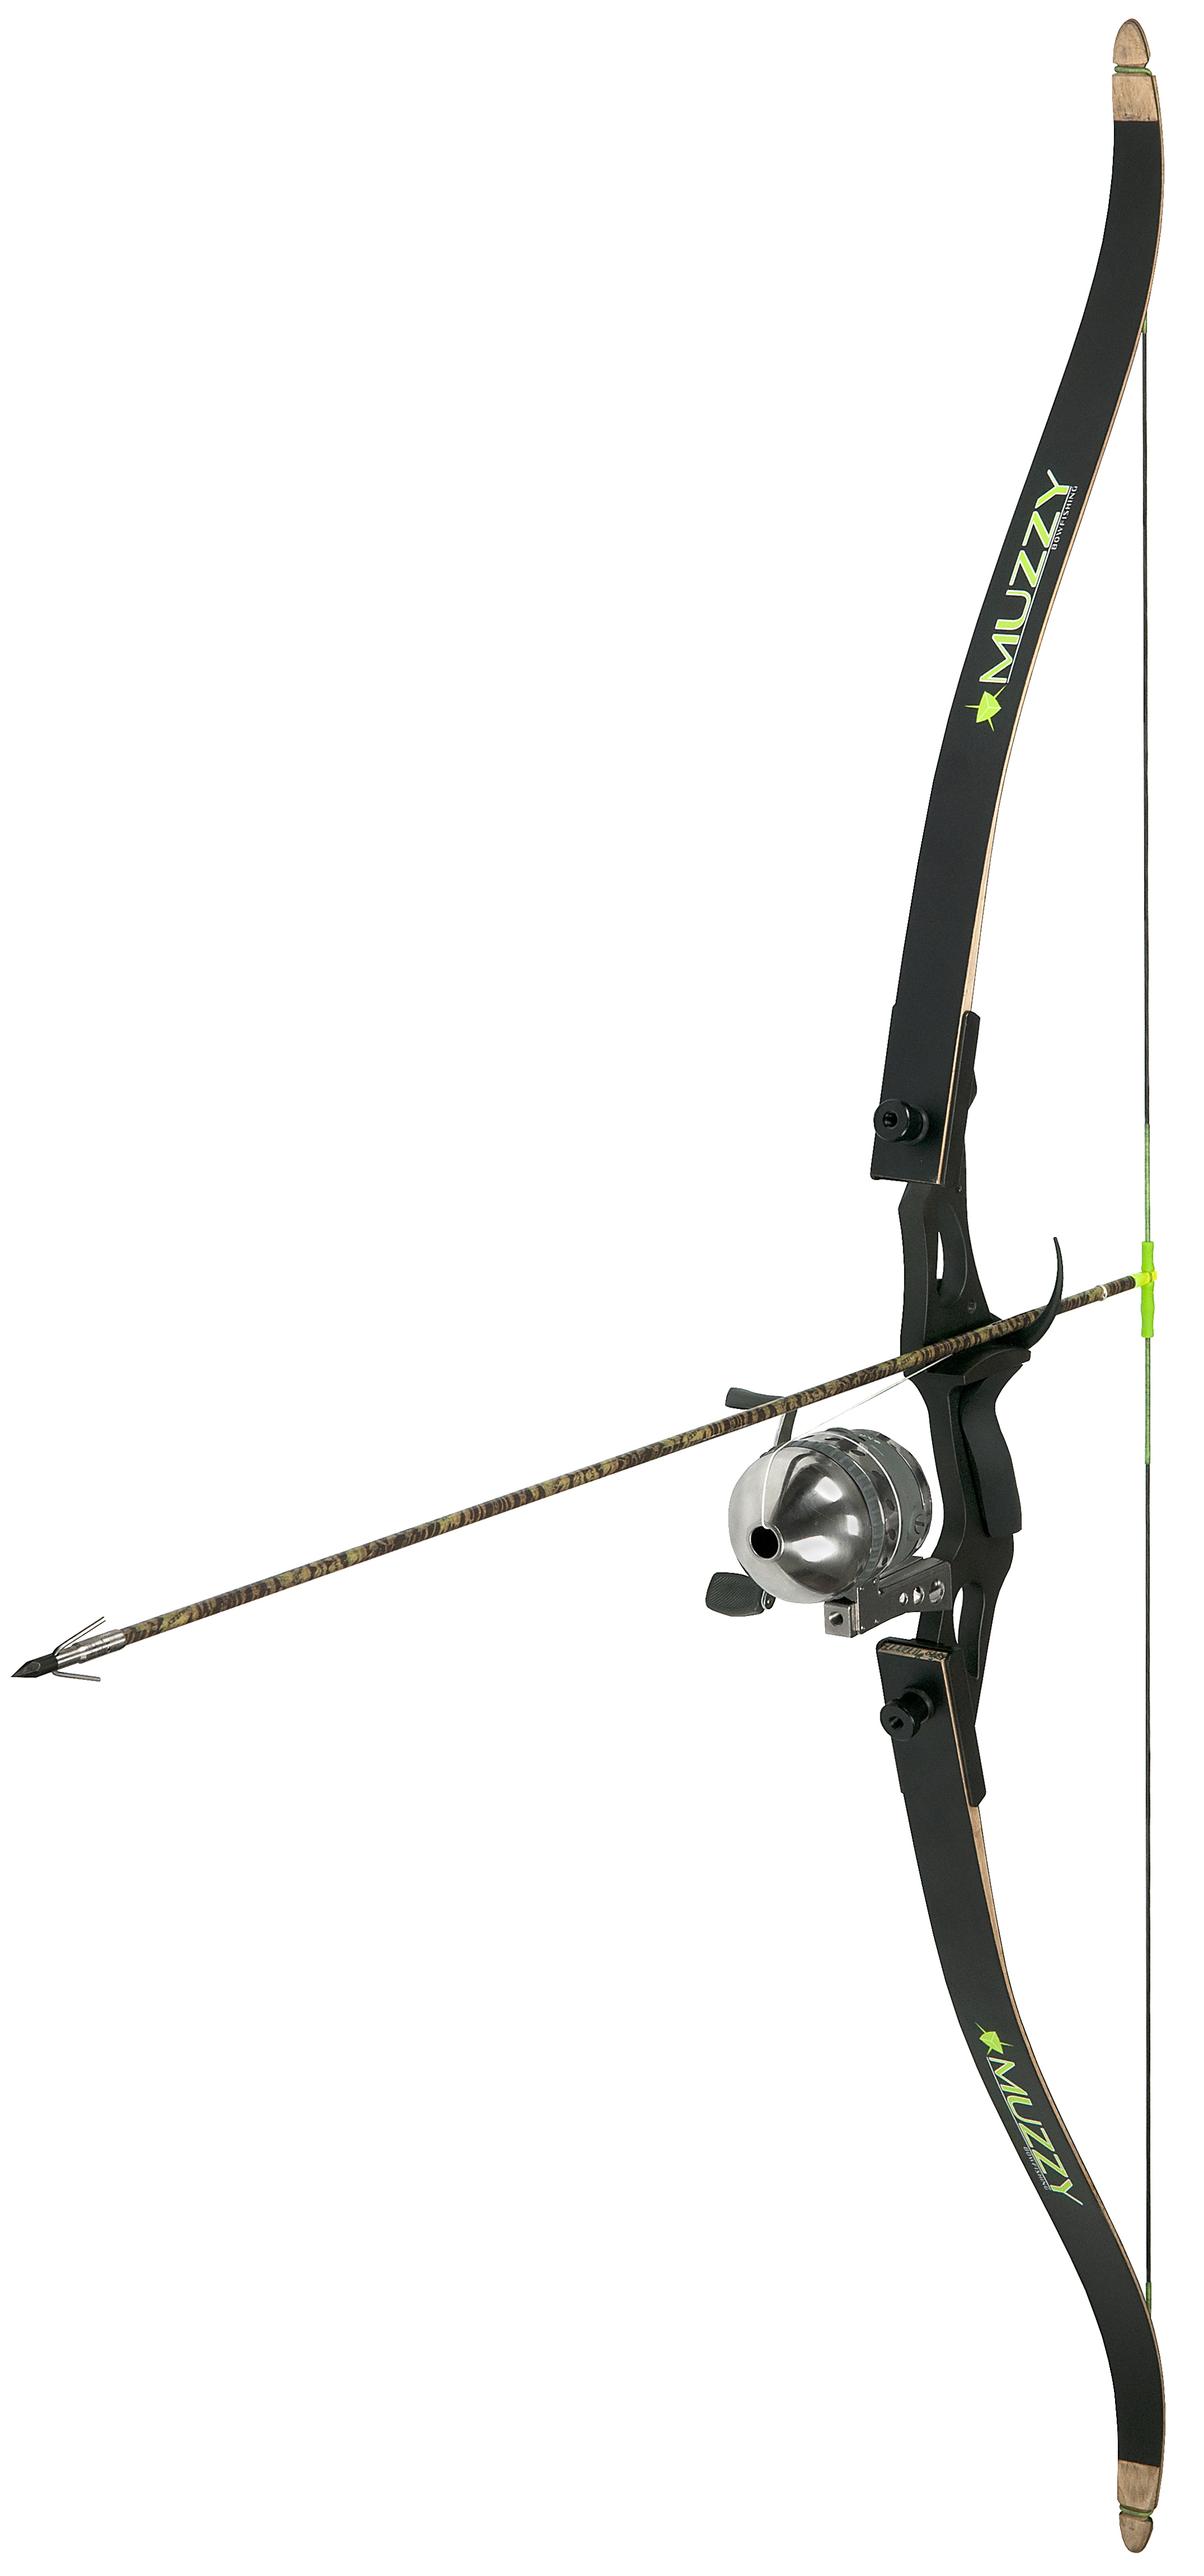 ata 2016 impale scales easier with muzzy 39 s bowfishing kit